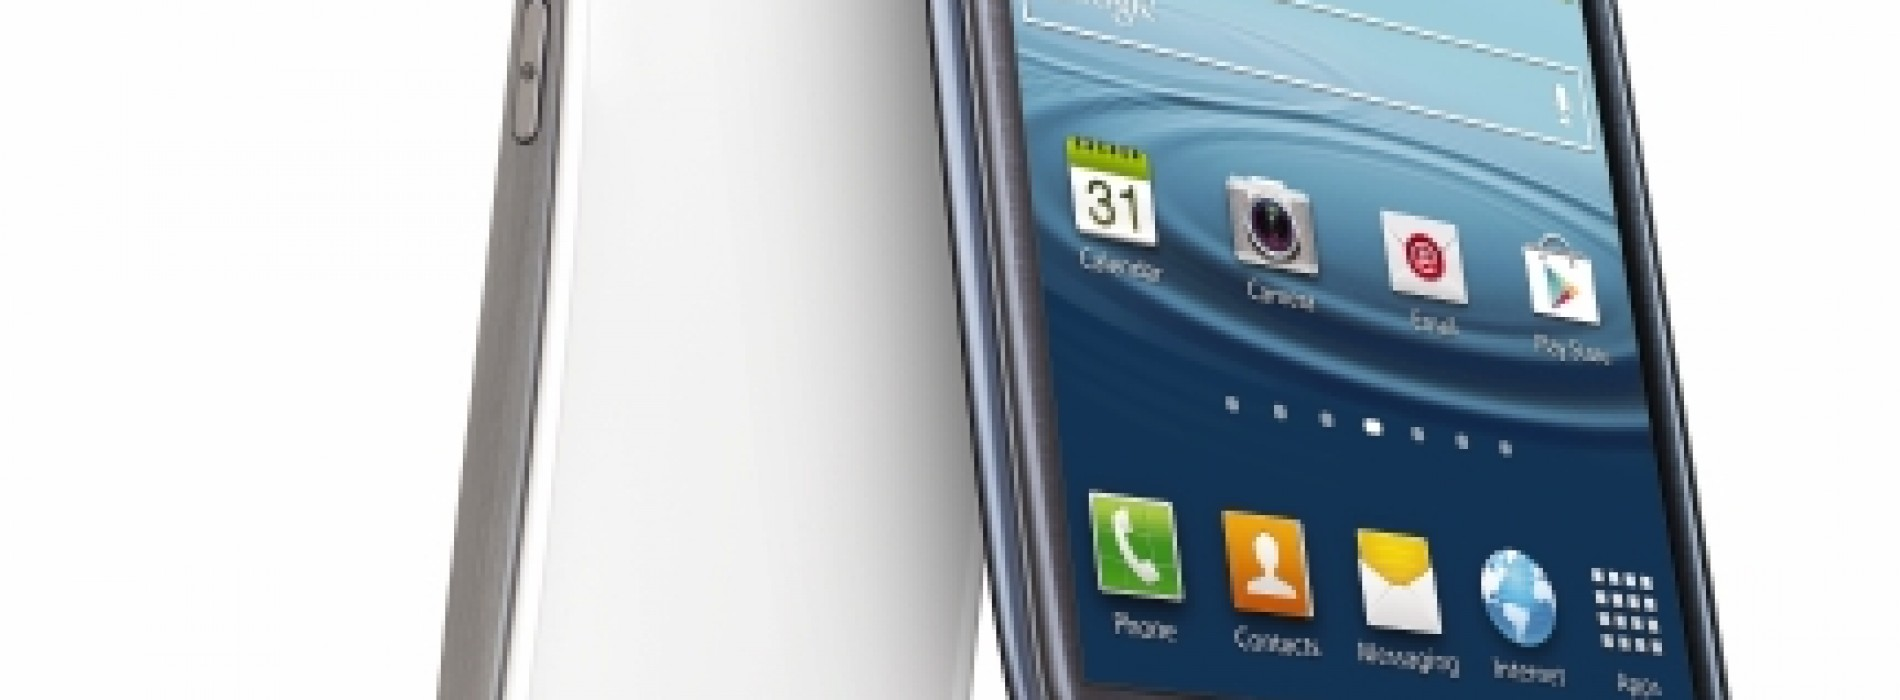 Samsung will in fact offer 64GB Galaxy S III before year's end